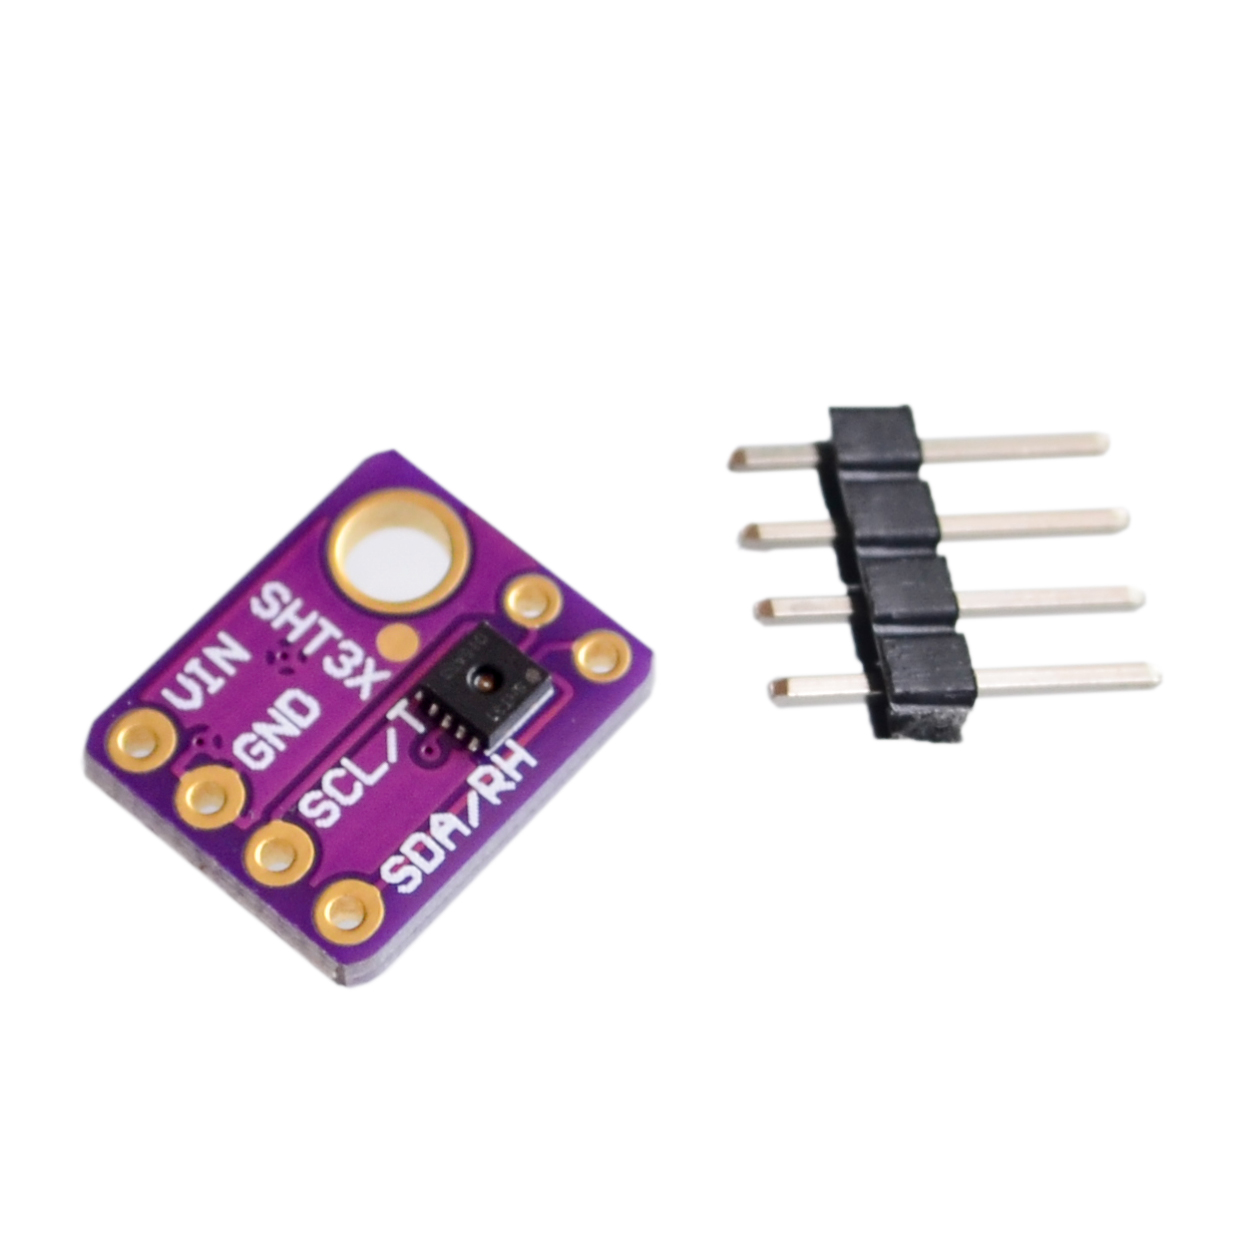 Sht31 Temperature D Humidity Sensor Module Breakout Weather Electronic Components Integrated Circuitsicsicchina Mainland Original I2c Interface Sht30 Digital Output Accuracy